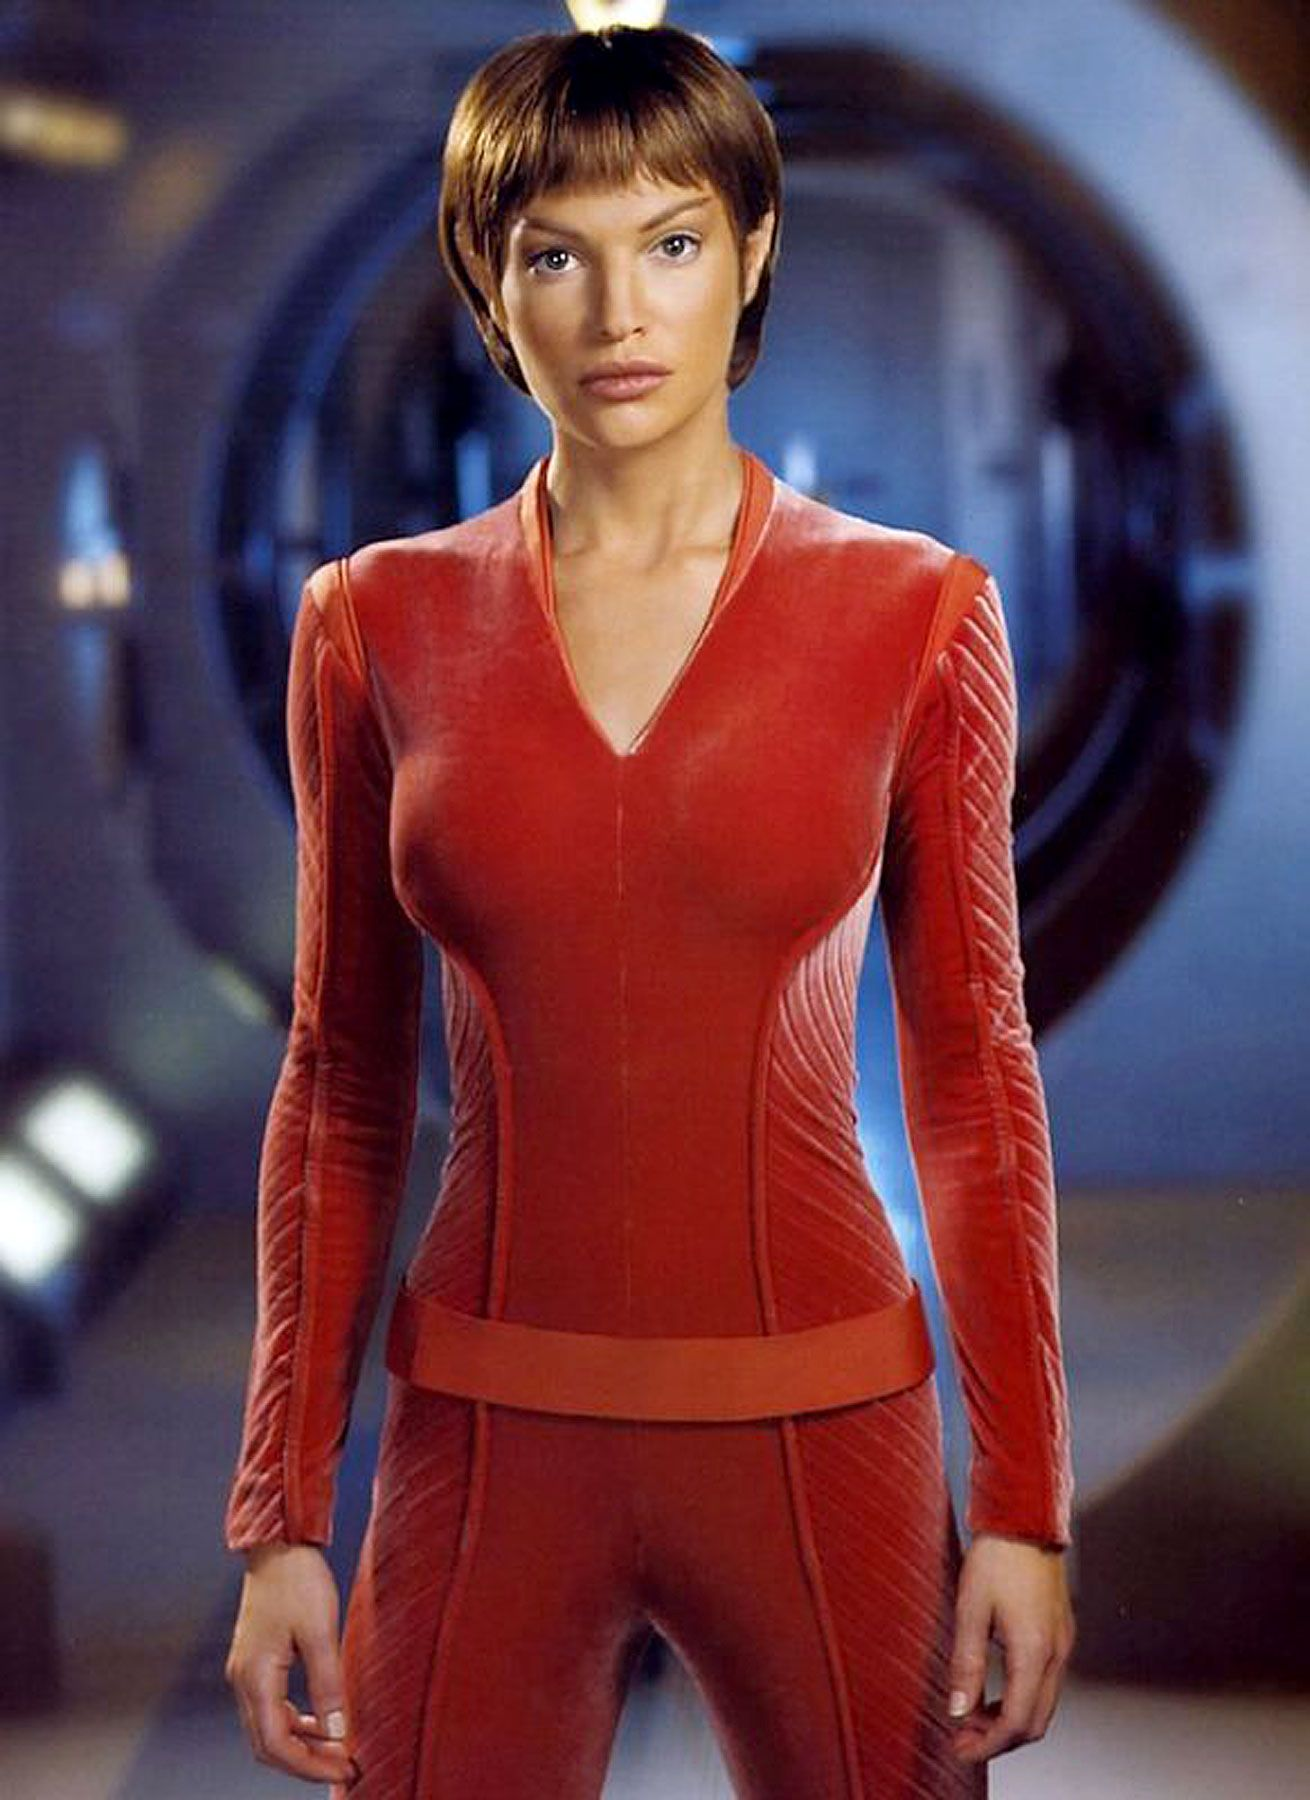 Hottest women of science fiction